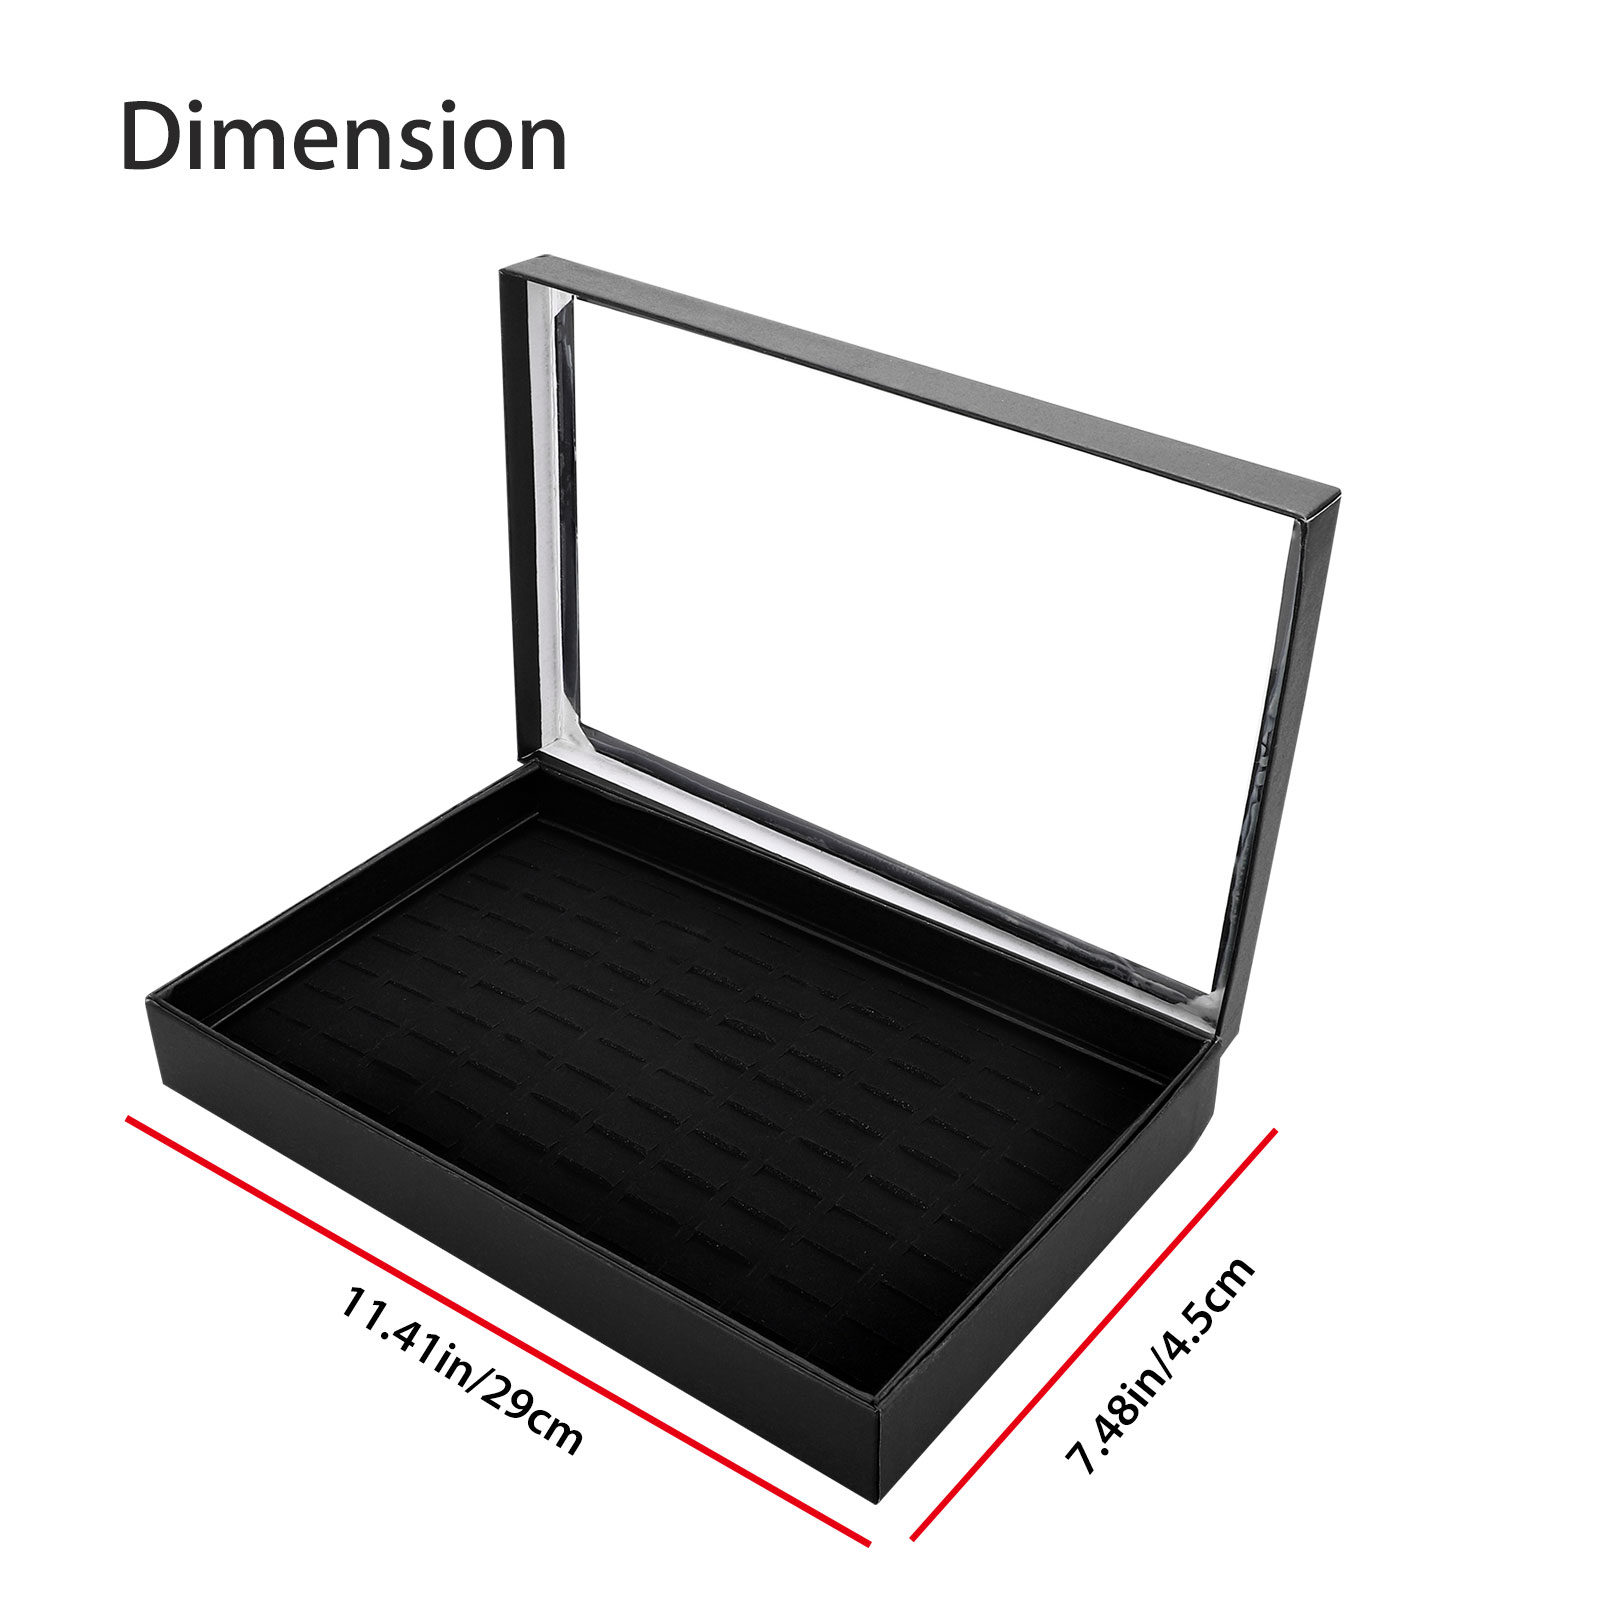 Fashion-Jewelry-Organizer-Box-Holder-Tray-Case-For-Ring-Earring-Storage-Display thumbnail 6